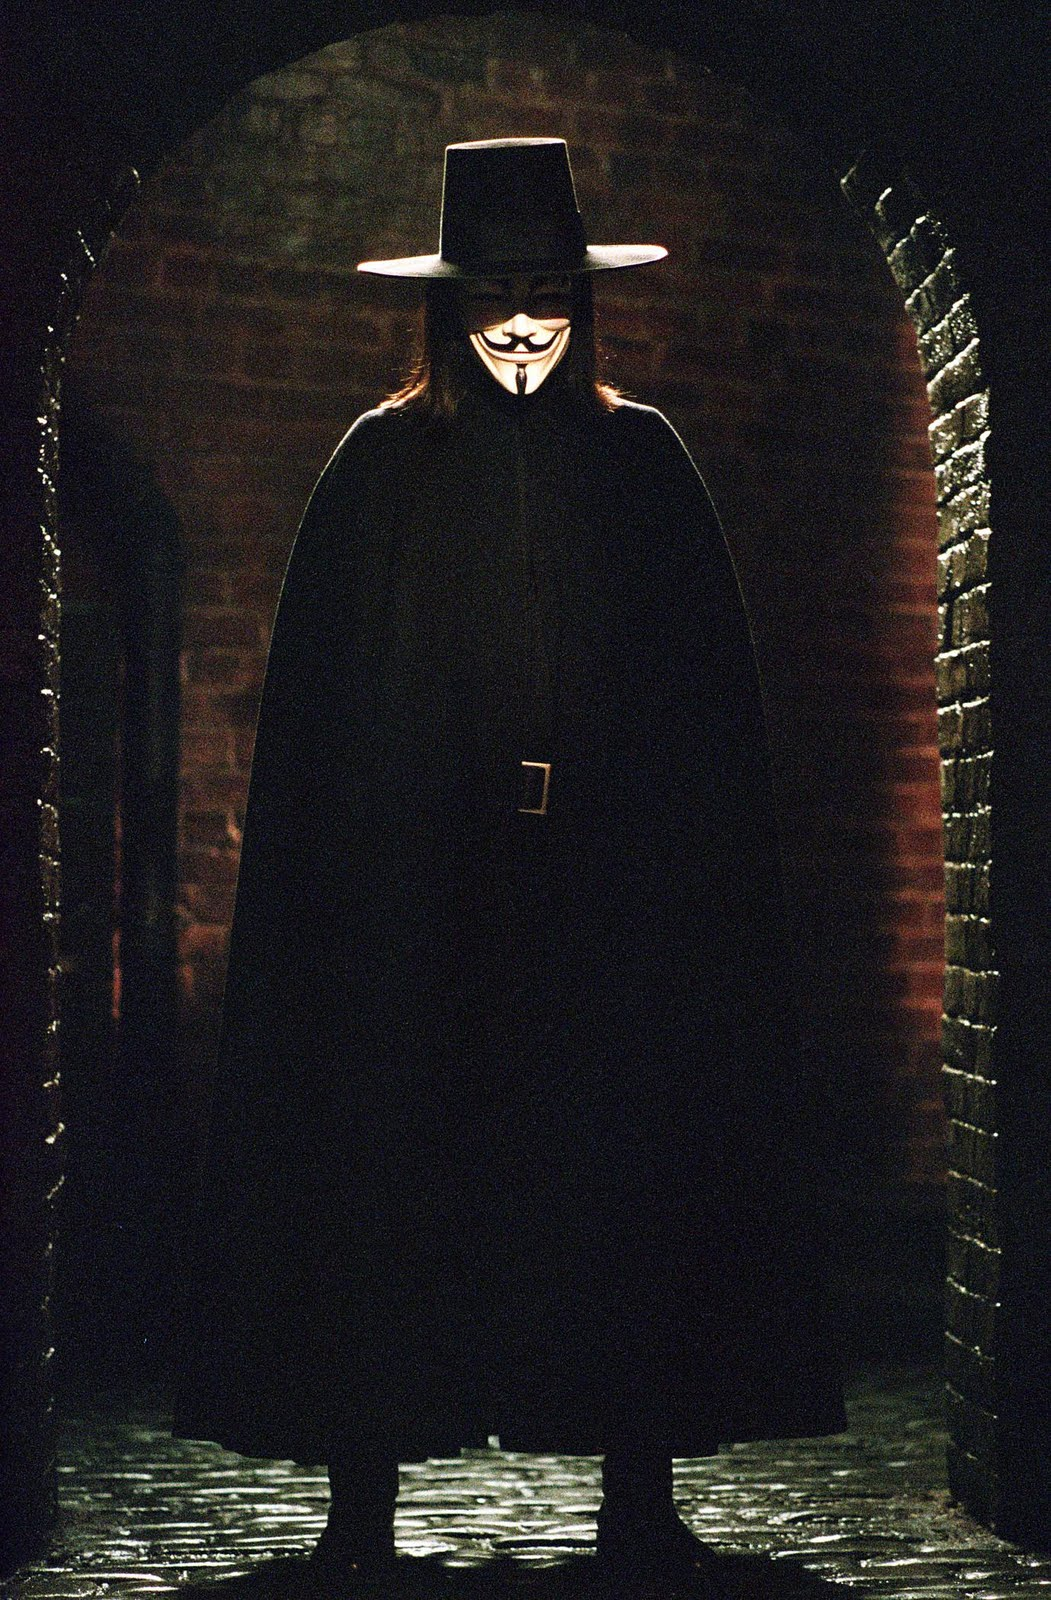 v for vendetta character essay My good experience essay gift ever essay technology progress vs nature introduction to essay ielts academic pdf english research paper topics x rays essay legal research paper guidelines describing character essay reference essay for wild animals vanishing points know yourself essay not slopped.